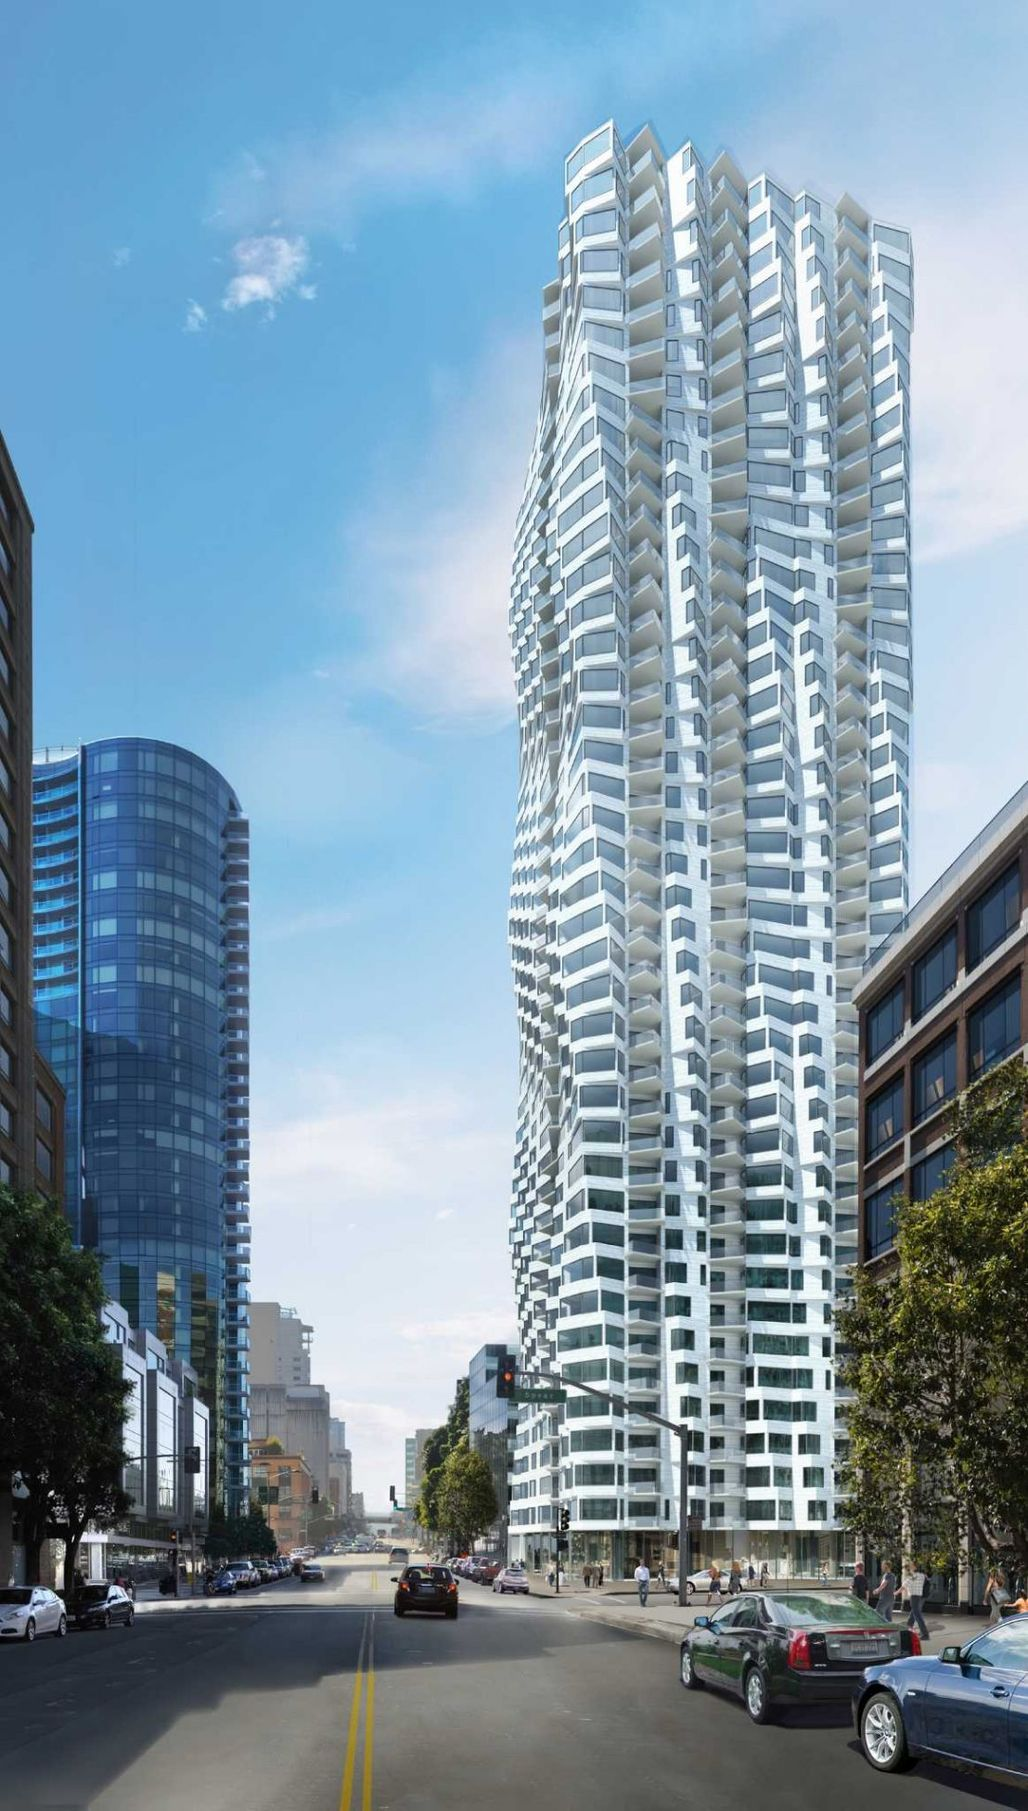 Rendering of Jeanne Gangs proposed residential tower at 160 Folsom St., image via sfchronicle.com.